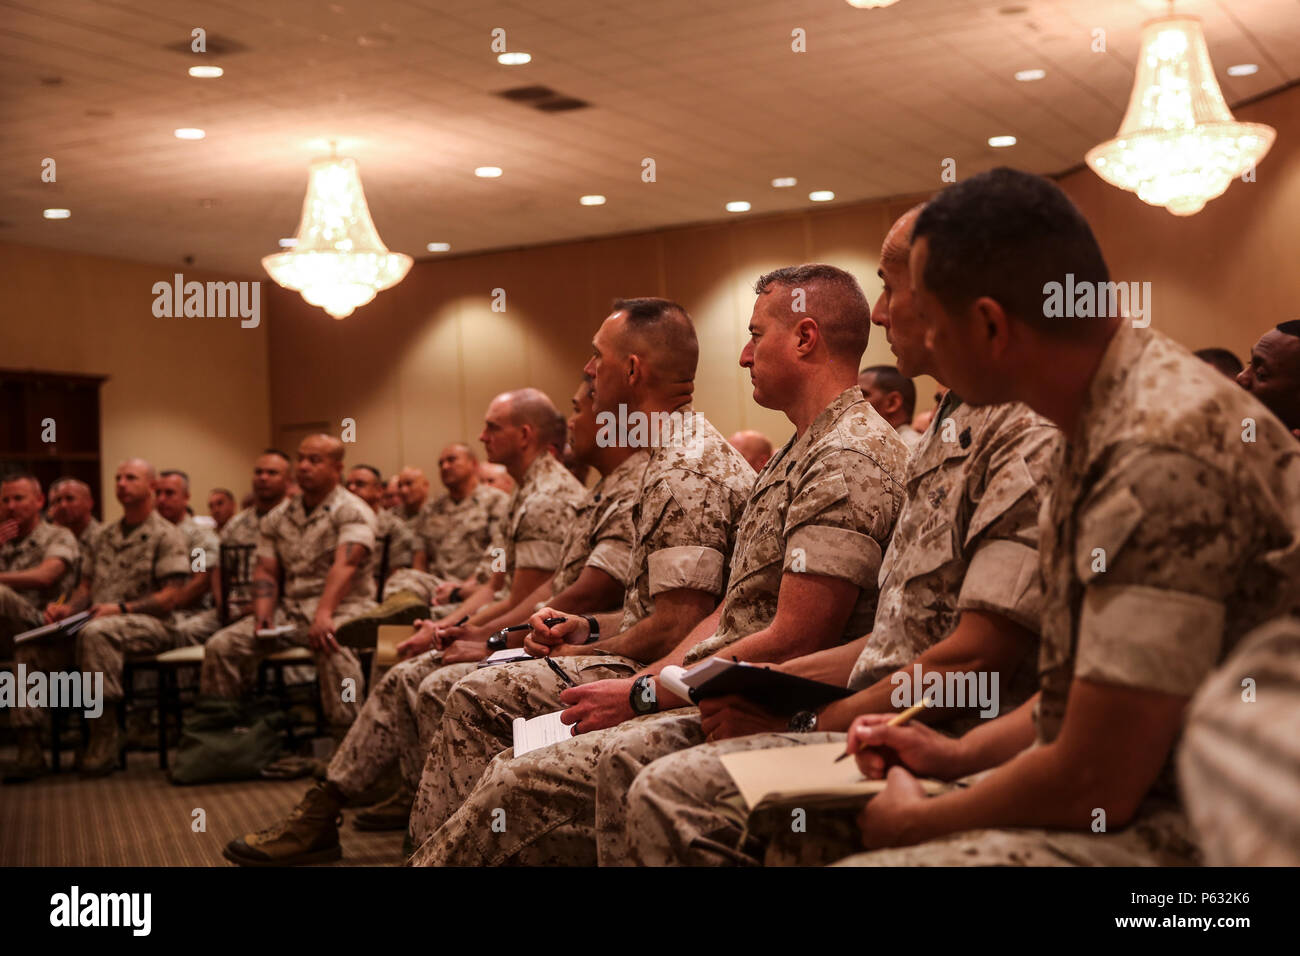 MARINE CORPS BASE CAMP PENDLETON, Calif. – Senior enlisted Marines and sailors listen to retired Gen. Peter Pace, former Chairman of the Joint Chiefs of Staff, during an E-9 symposium at Camp Pendleton April 8, 2016. Pace was the guest speaker for the event, and led participants on a guided discussion. Armed with fresh ideas, these enlightened Marines and sailors can return to their commands better prepared to lead, mentor and develop the next generation of professional warfighters. (U.S. Marine Corps photo by Sgt. Emmanuel Ramos/Released) - Stock Image